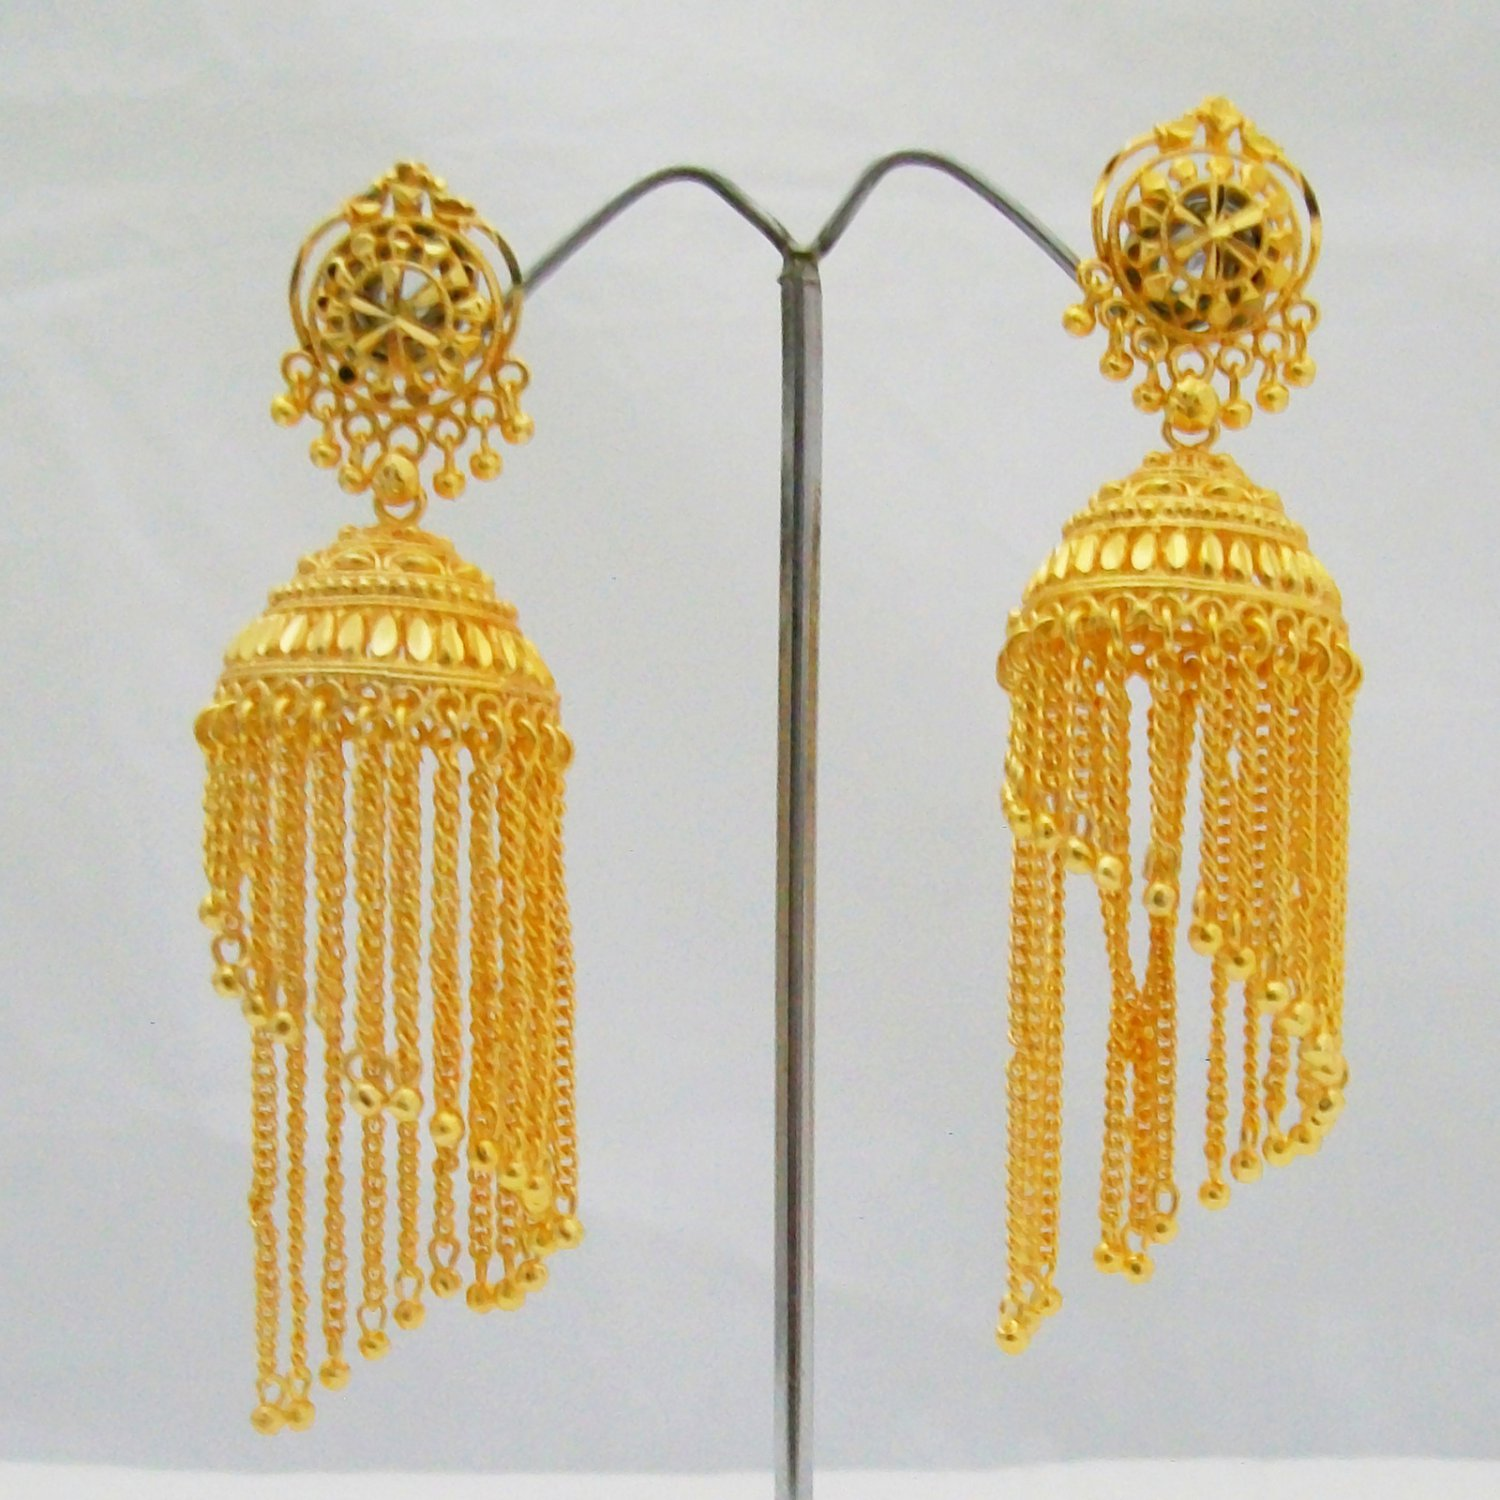 Hanging Chains Gold Plated Jhumka Earrings Long Fancy Design Latest Fashion